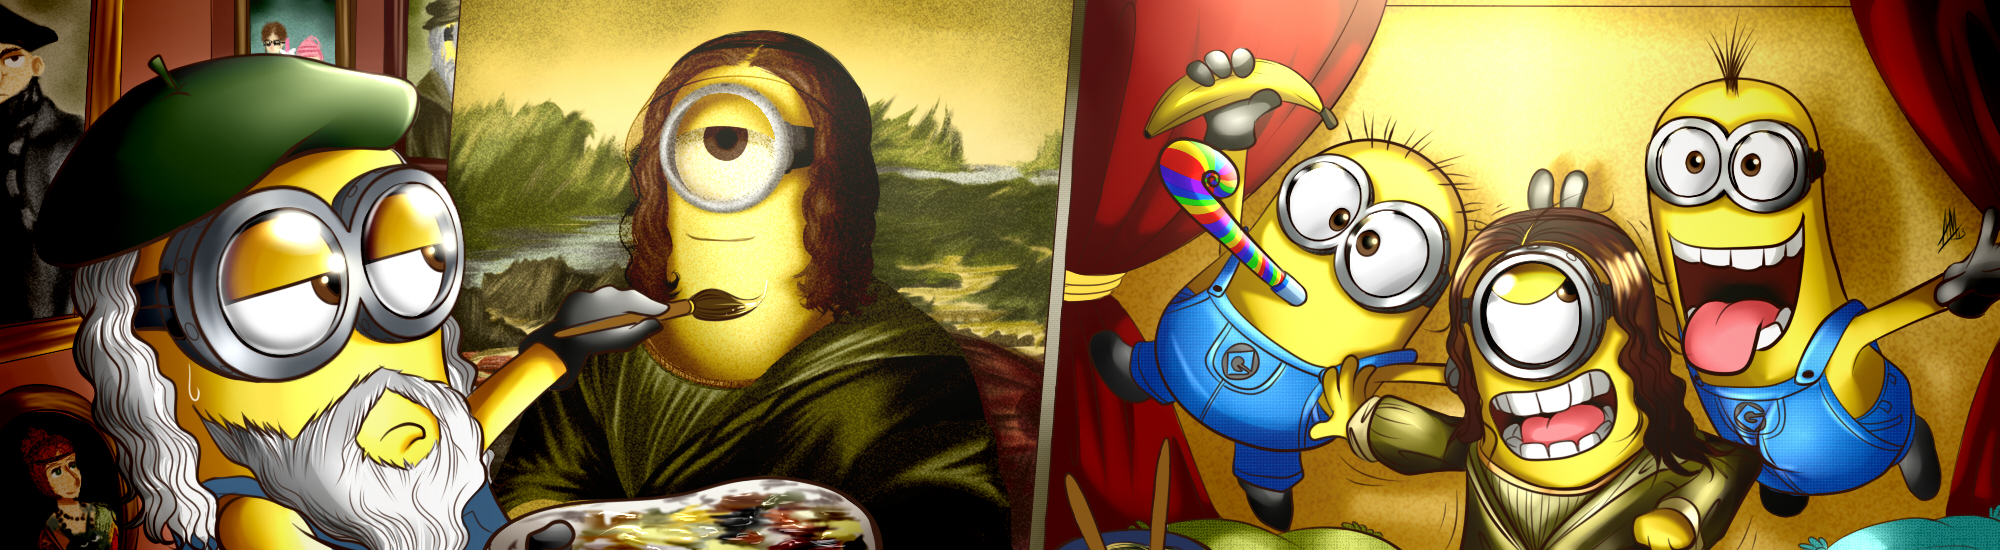 Painting The Mona Minion